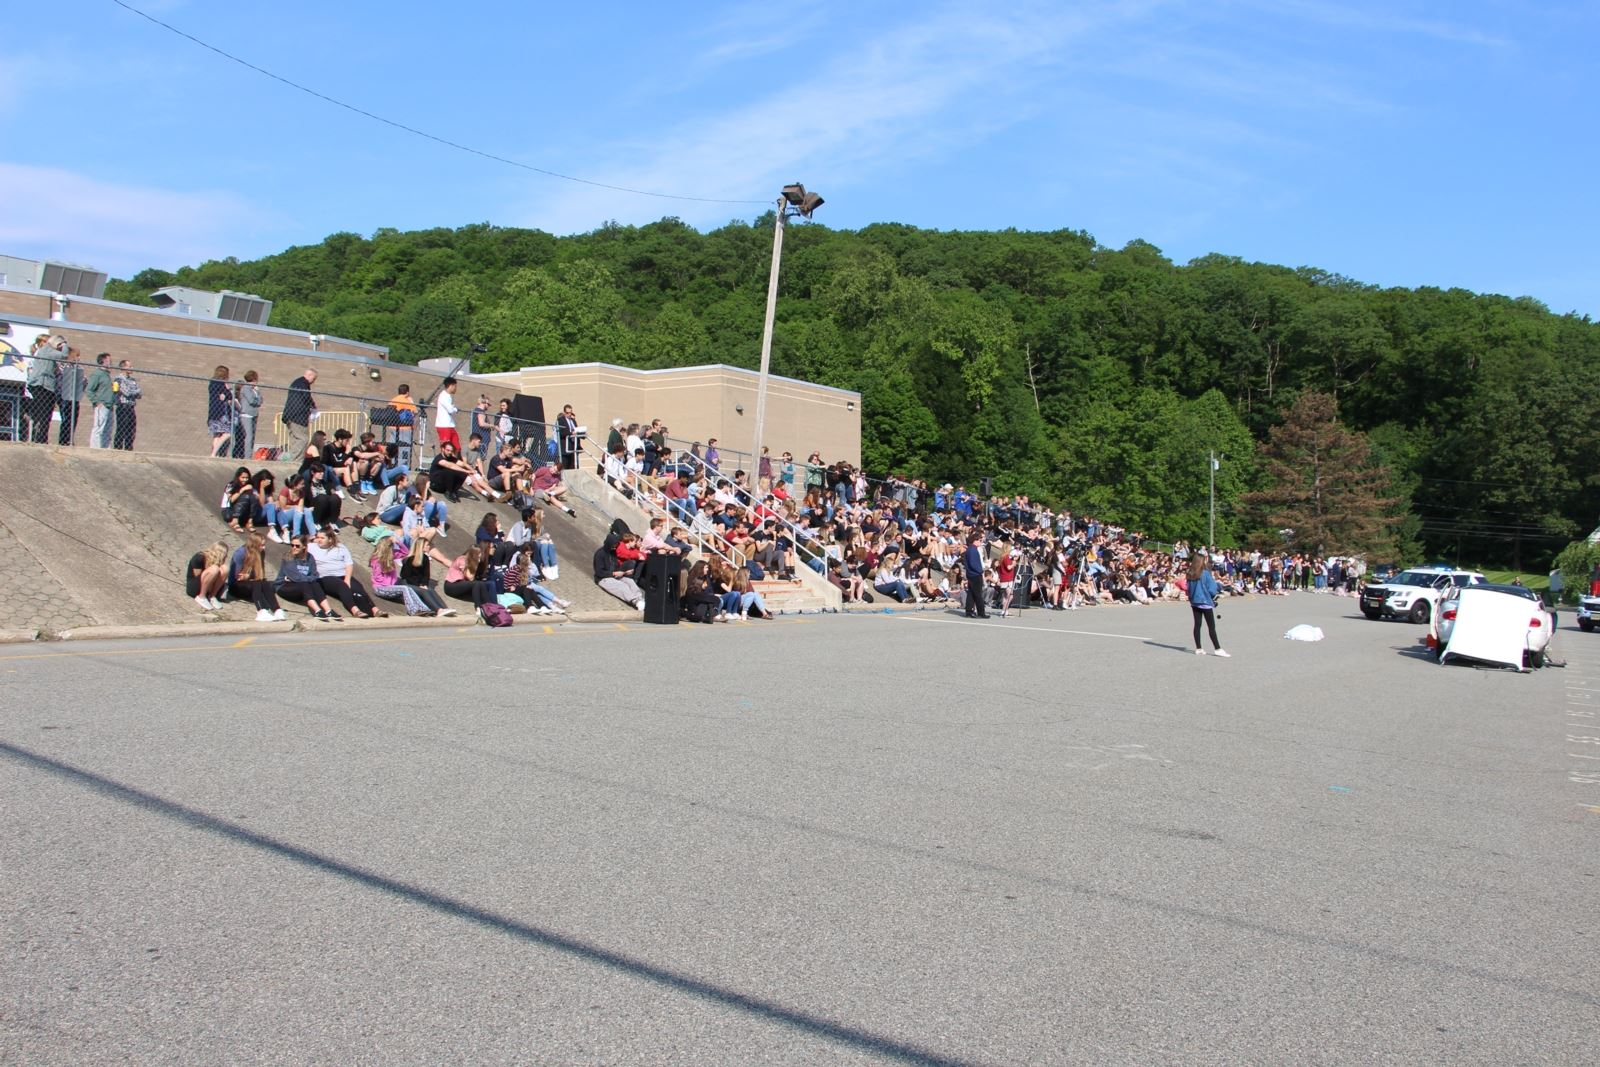 Crowd of Students Watching Drunk Driving Drill